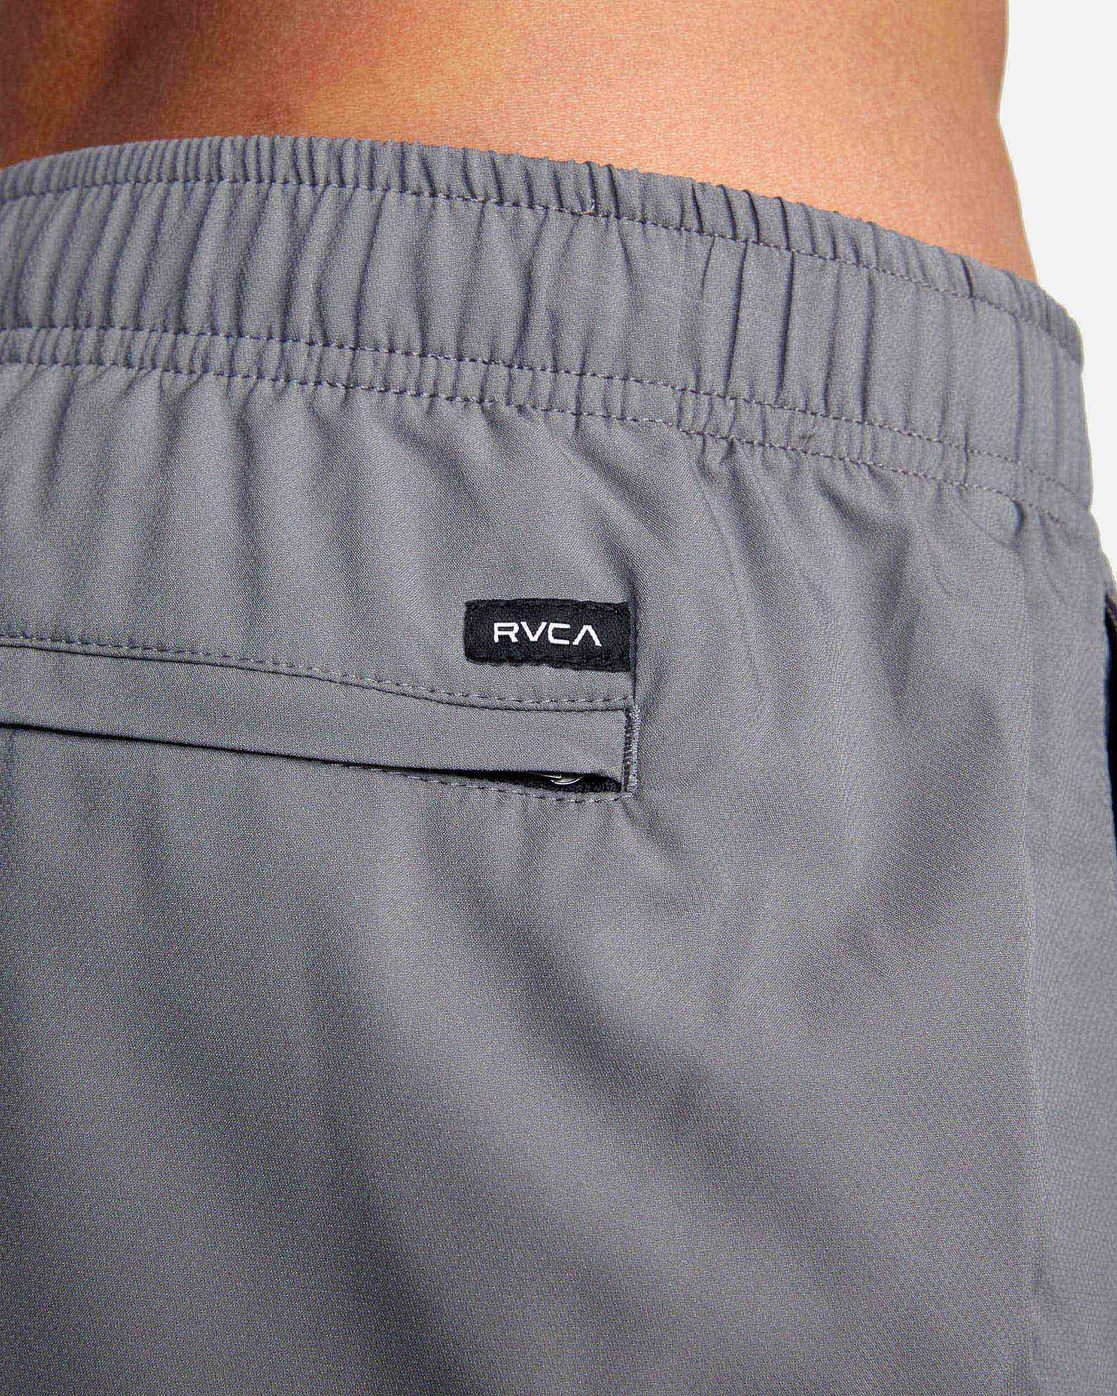 "9 YOGGER IV Recycled 17"" WORKOUT SHORT Grey V2091YGR RVCA"